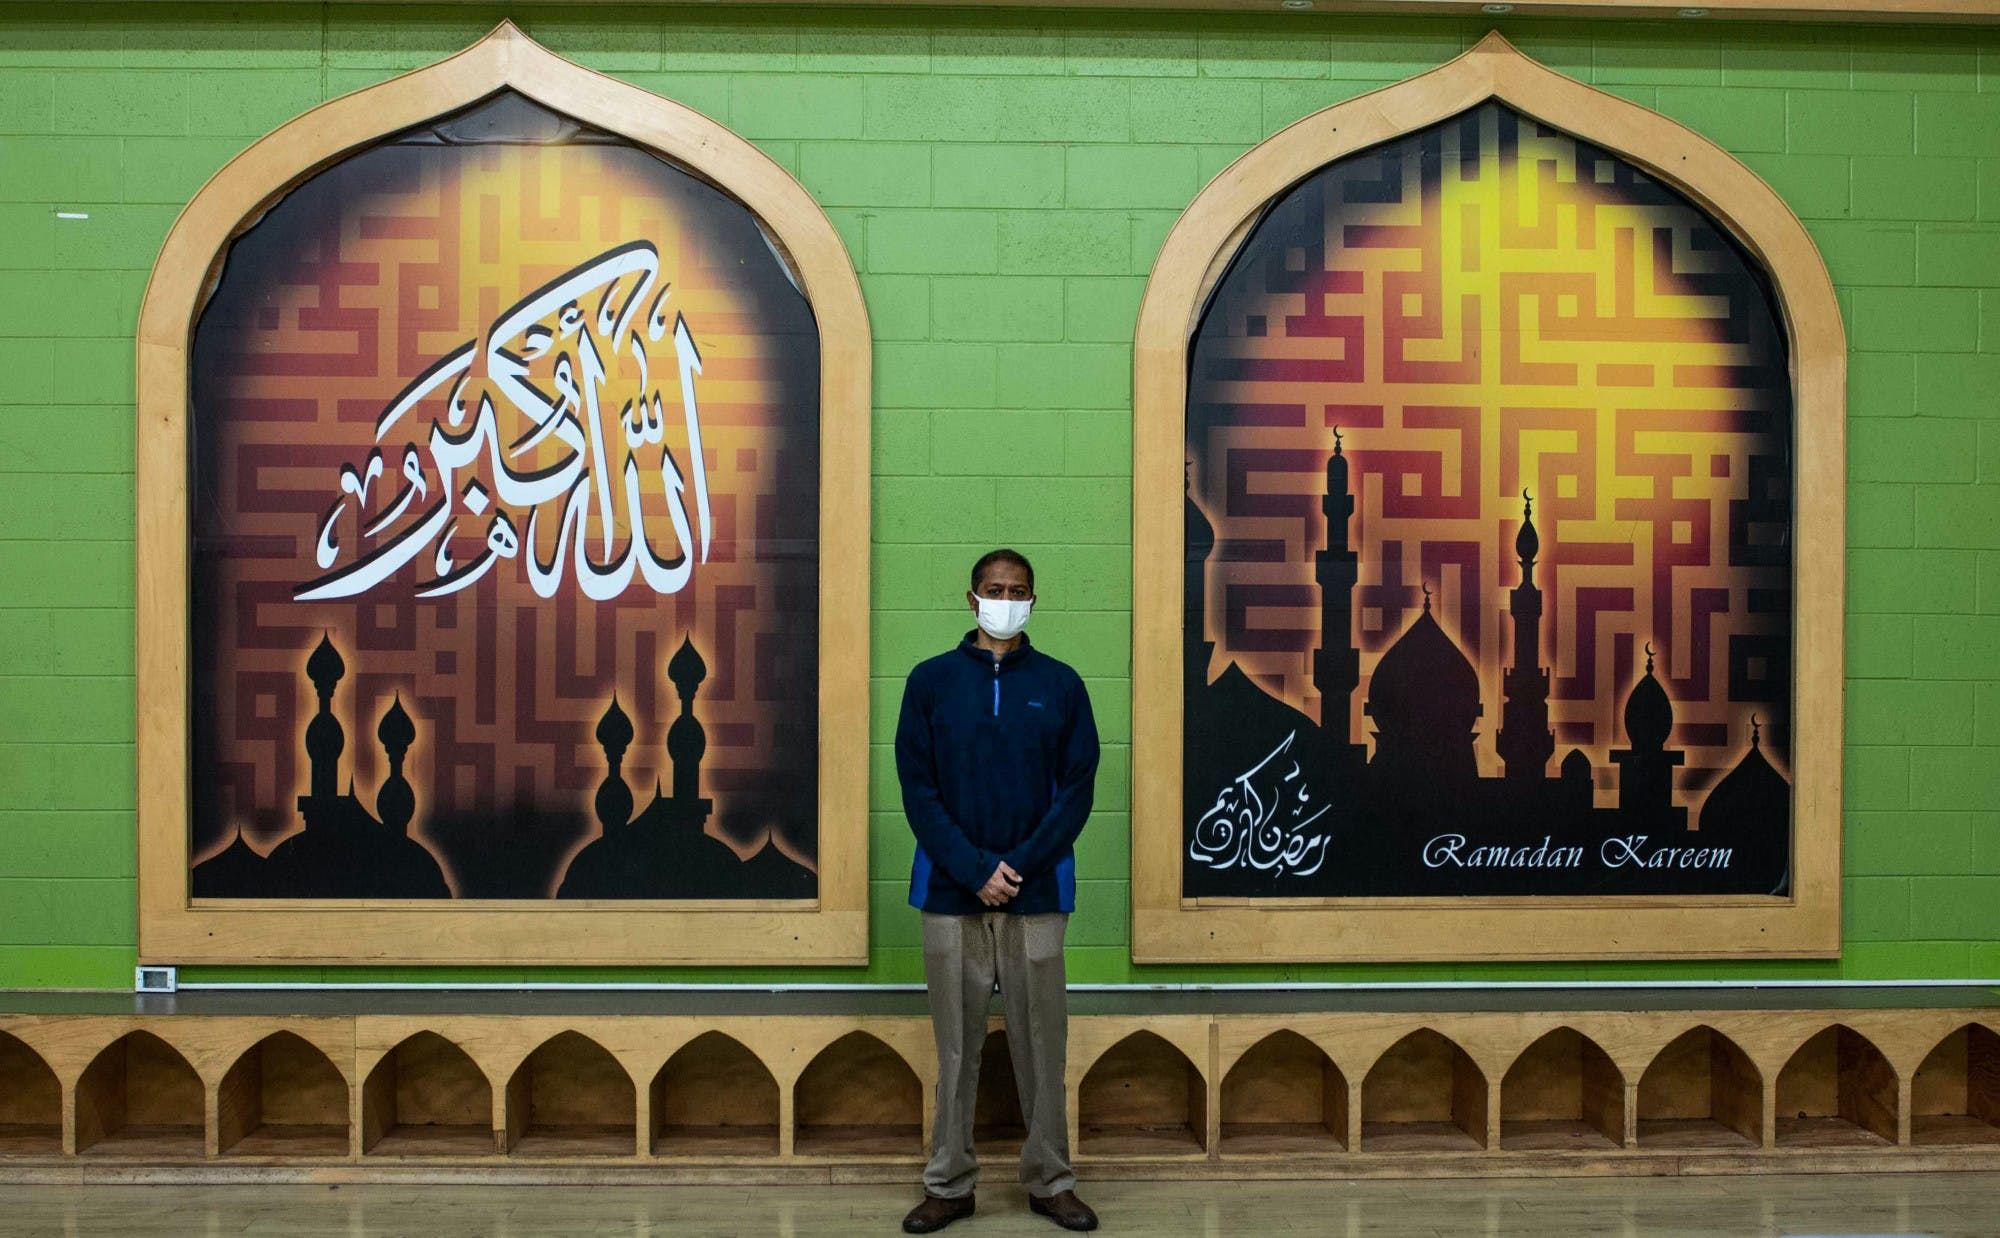 A man wearing a face mask stands for a portrait in front of a mural at an Islamic center.